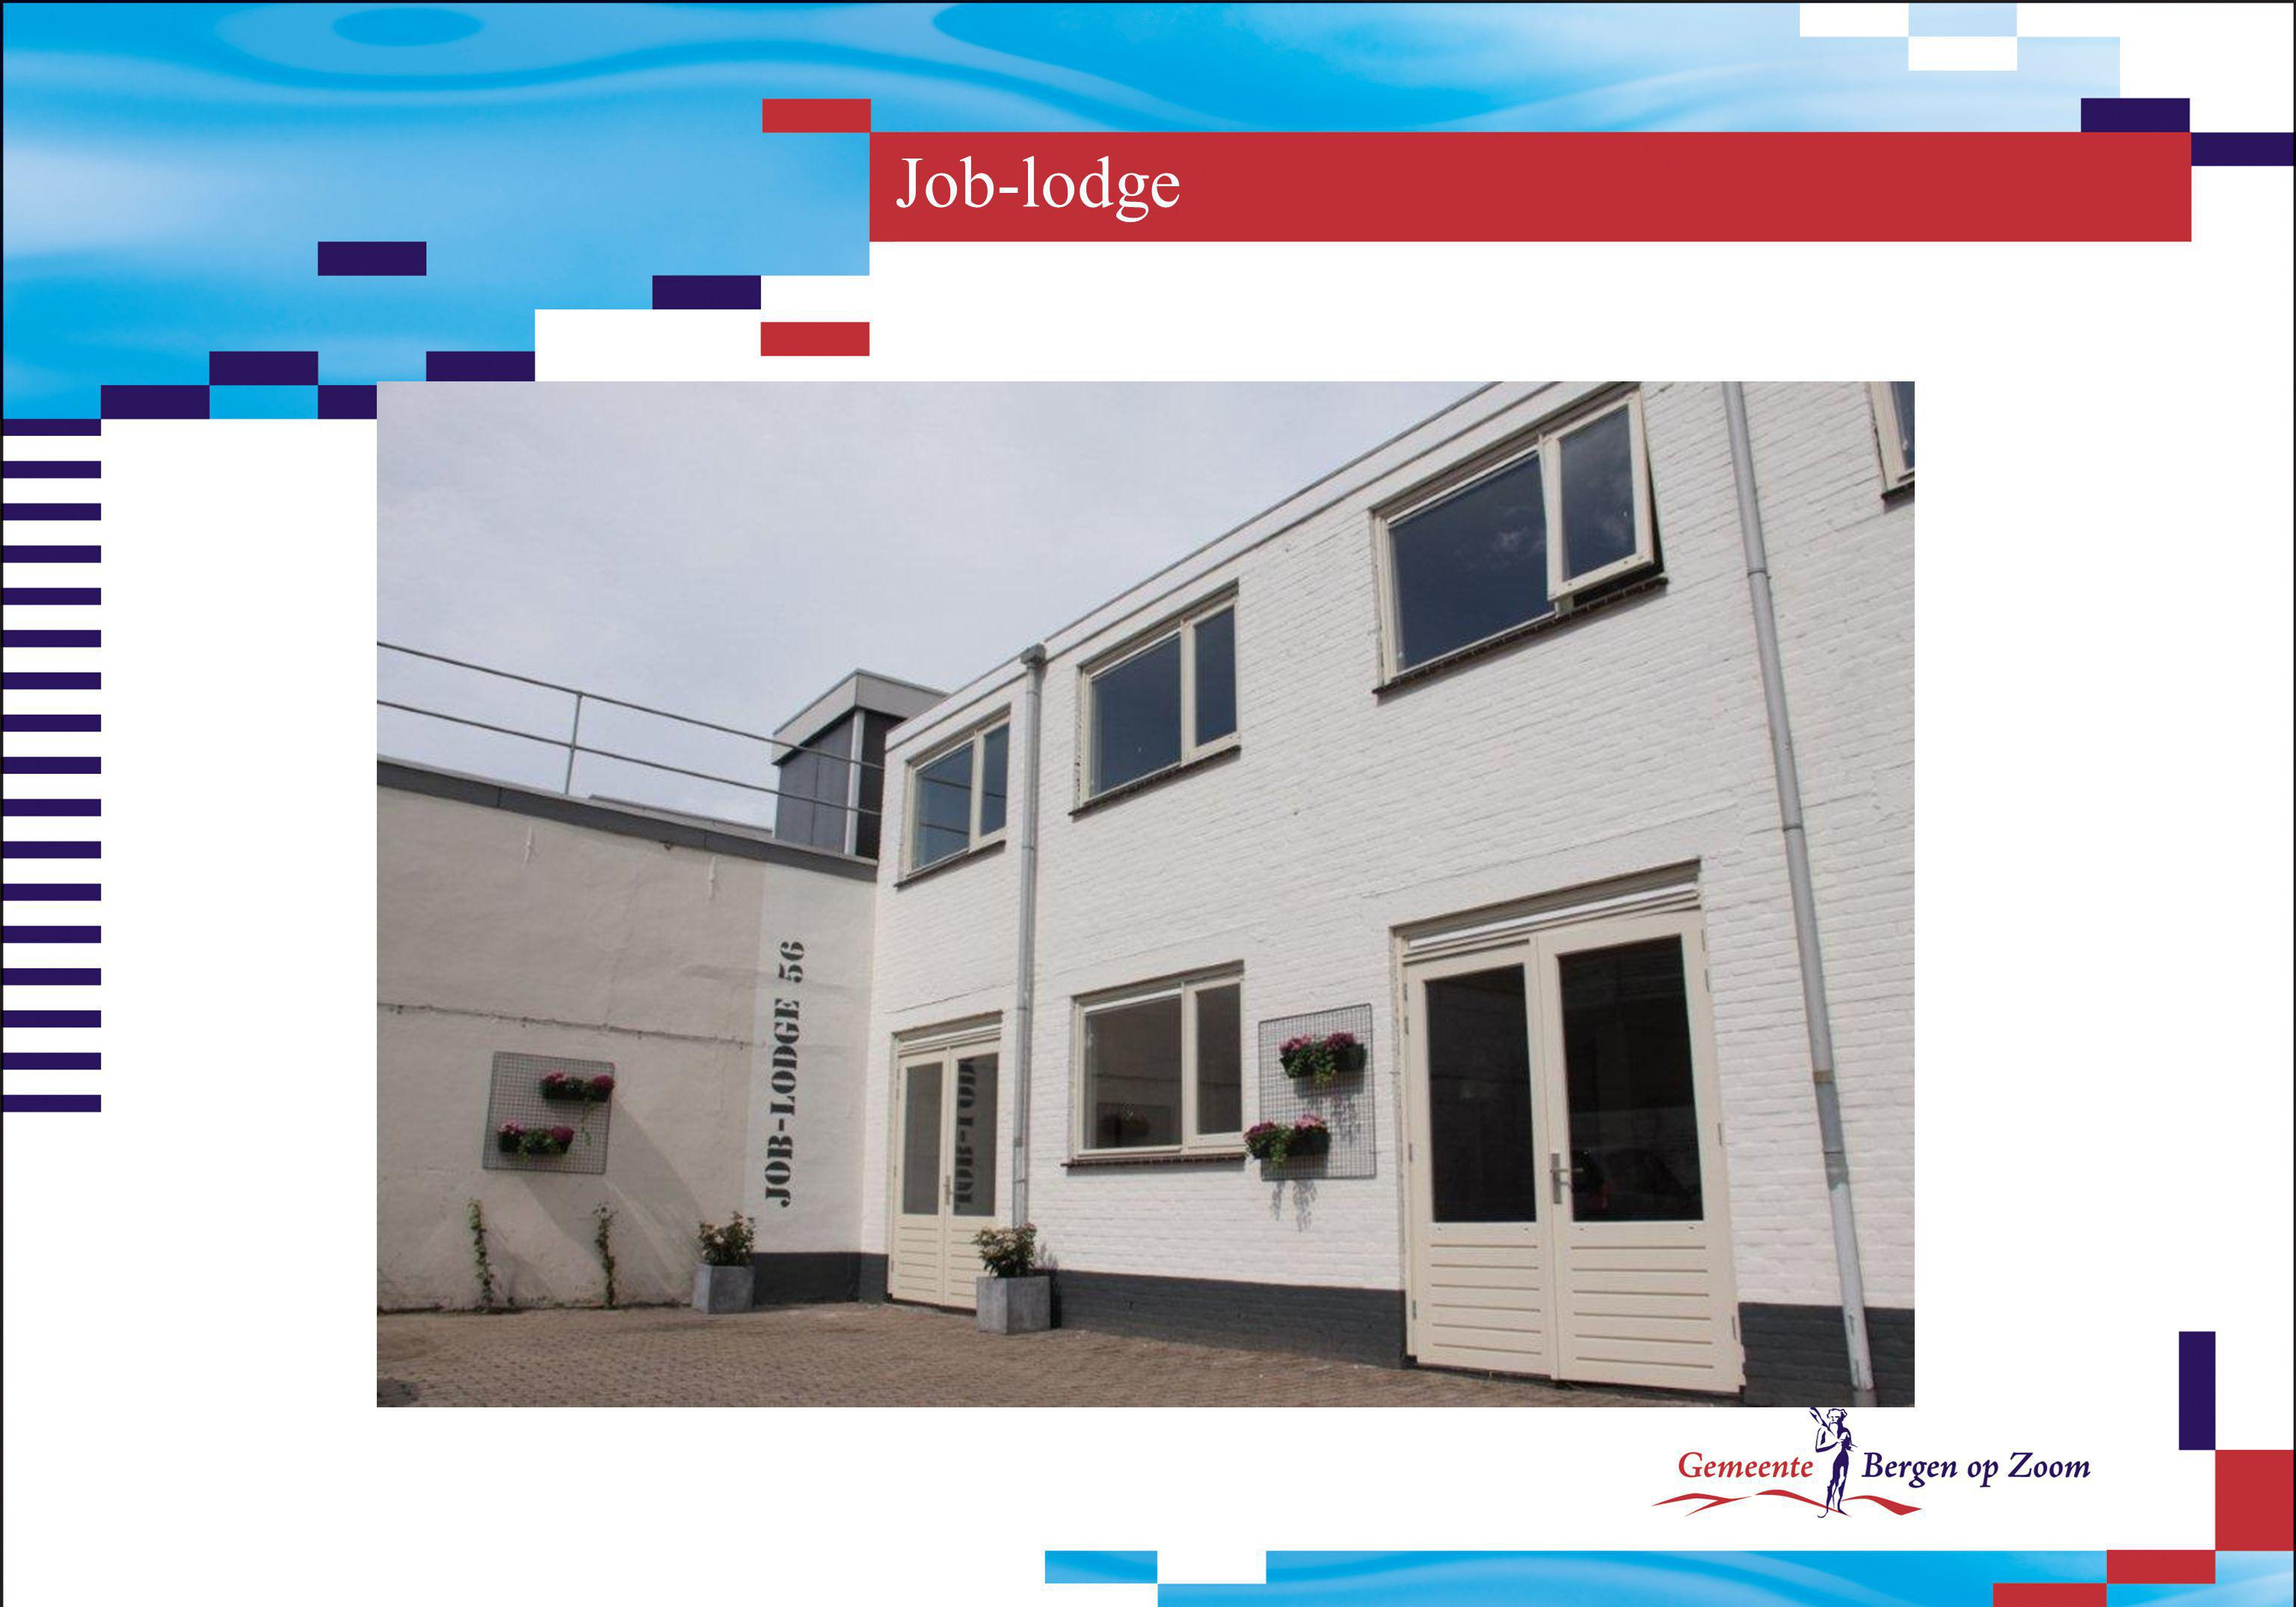 Job-lodge